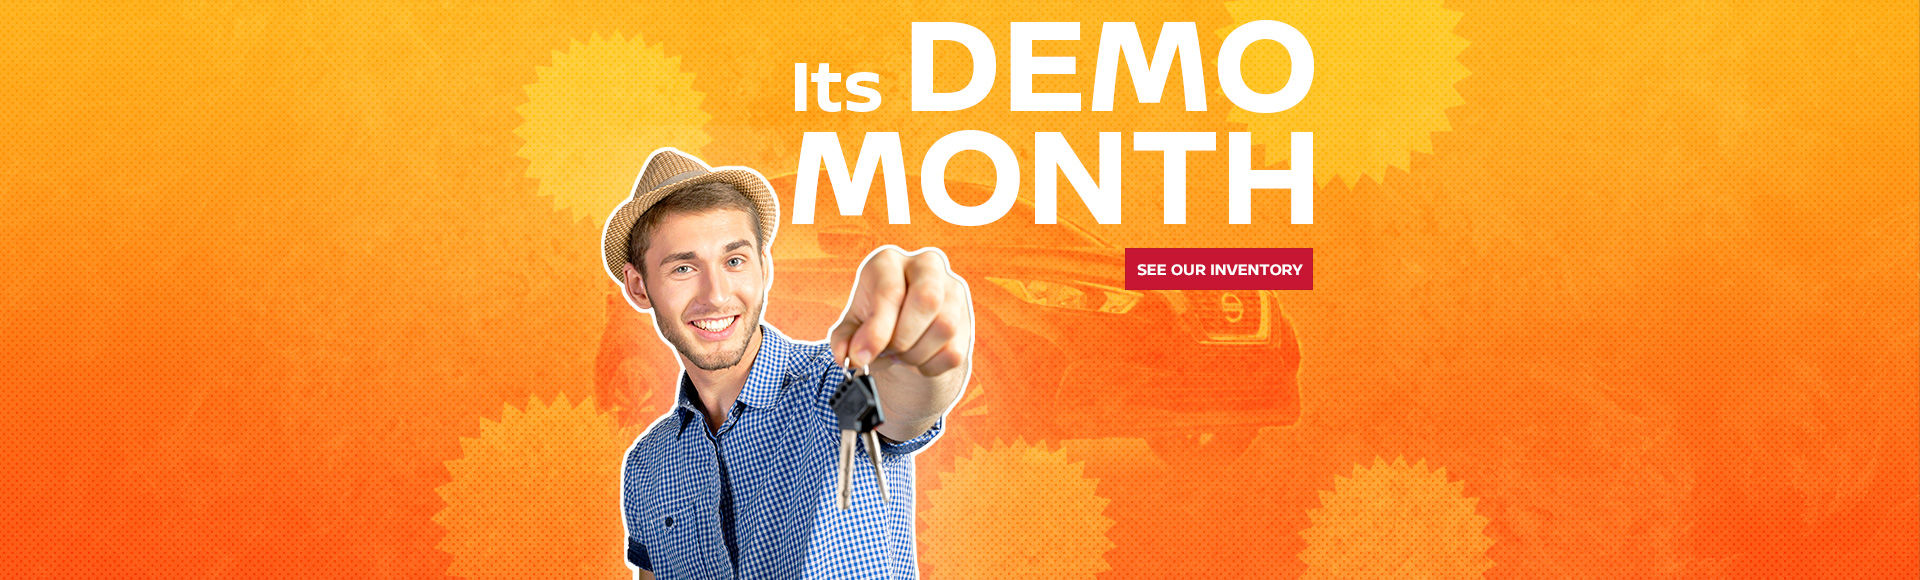 It's demo month